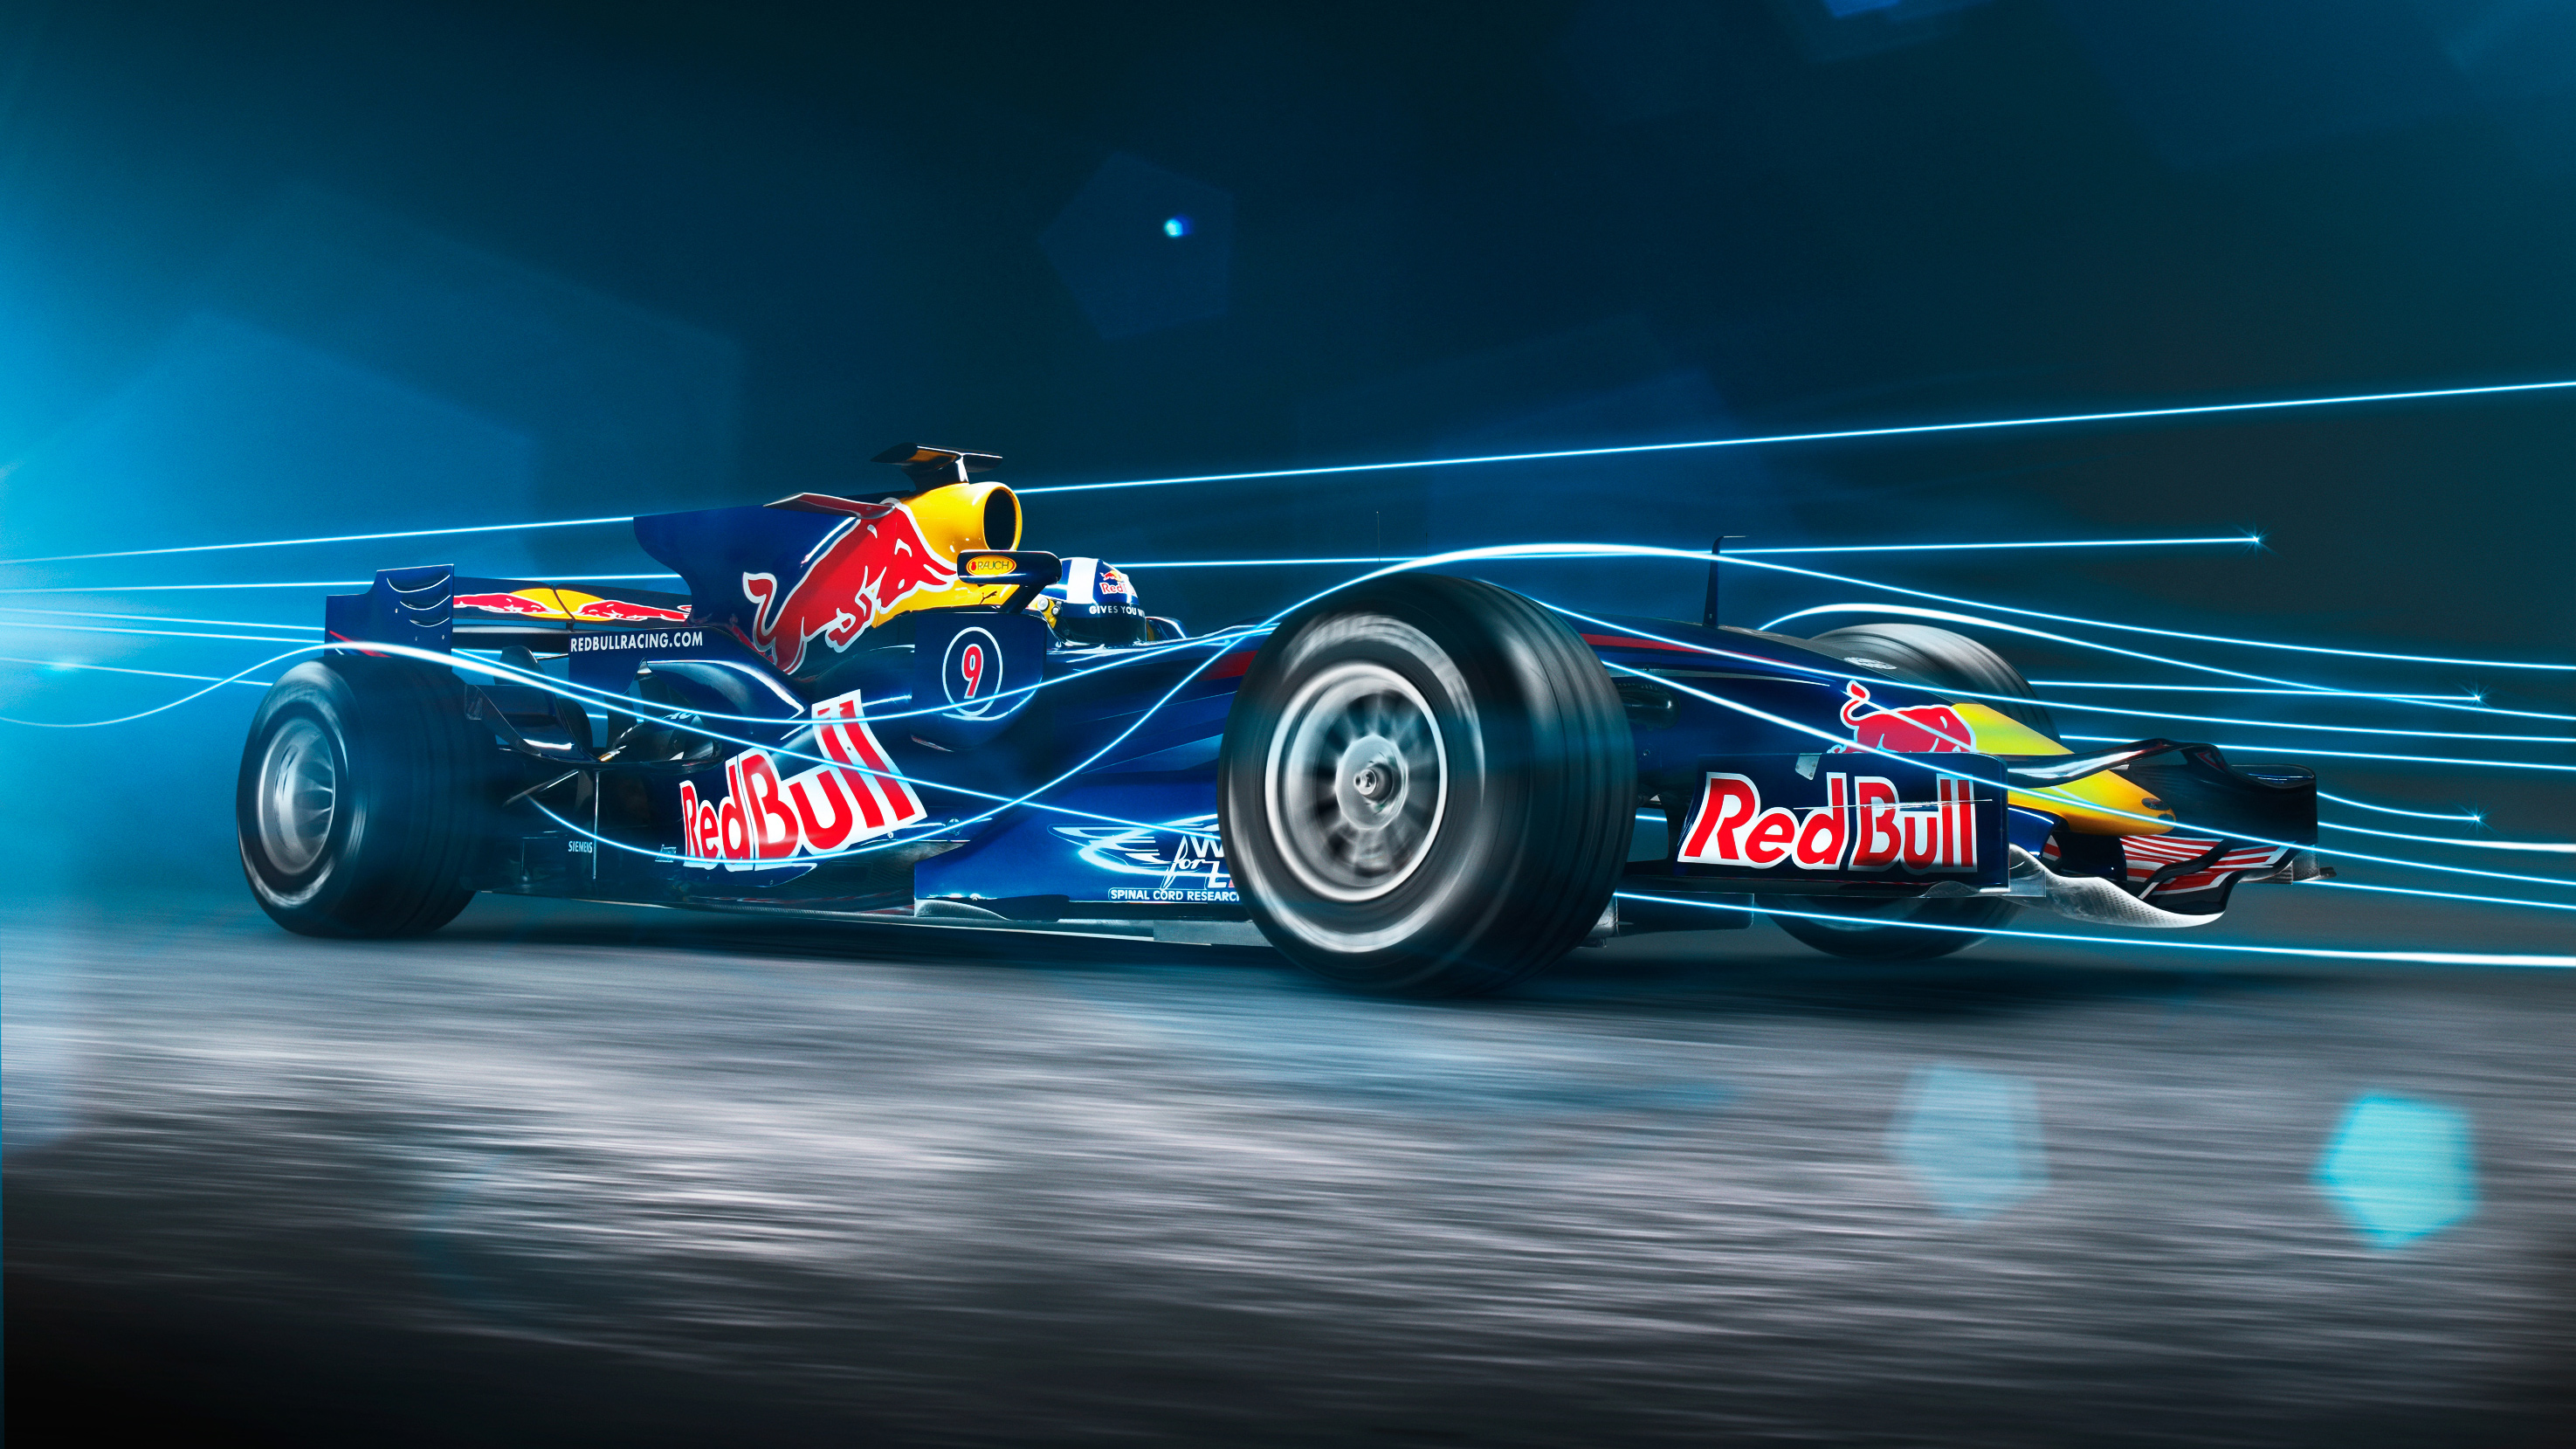 Red bull Racing F1 HD Wallpaper | HD Car Wallpapers | ID #8031